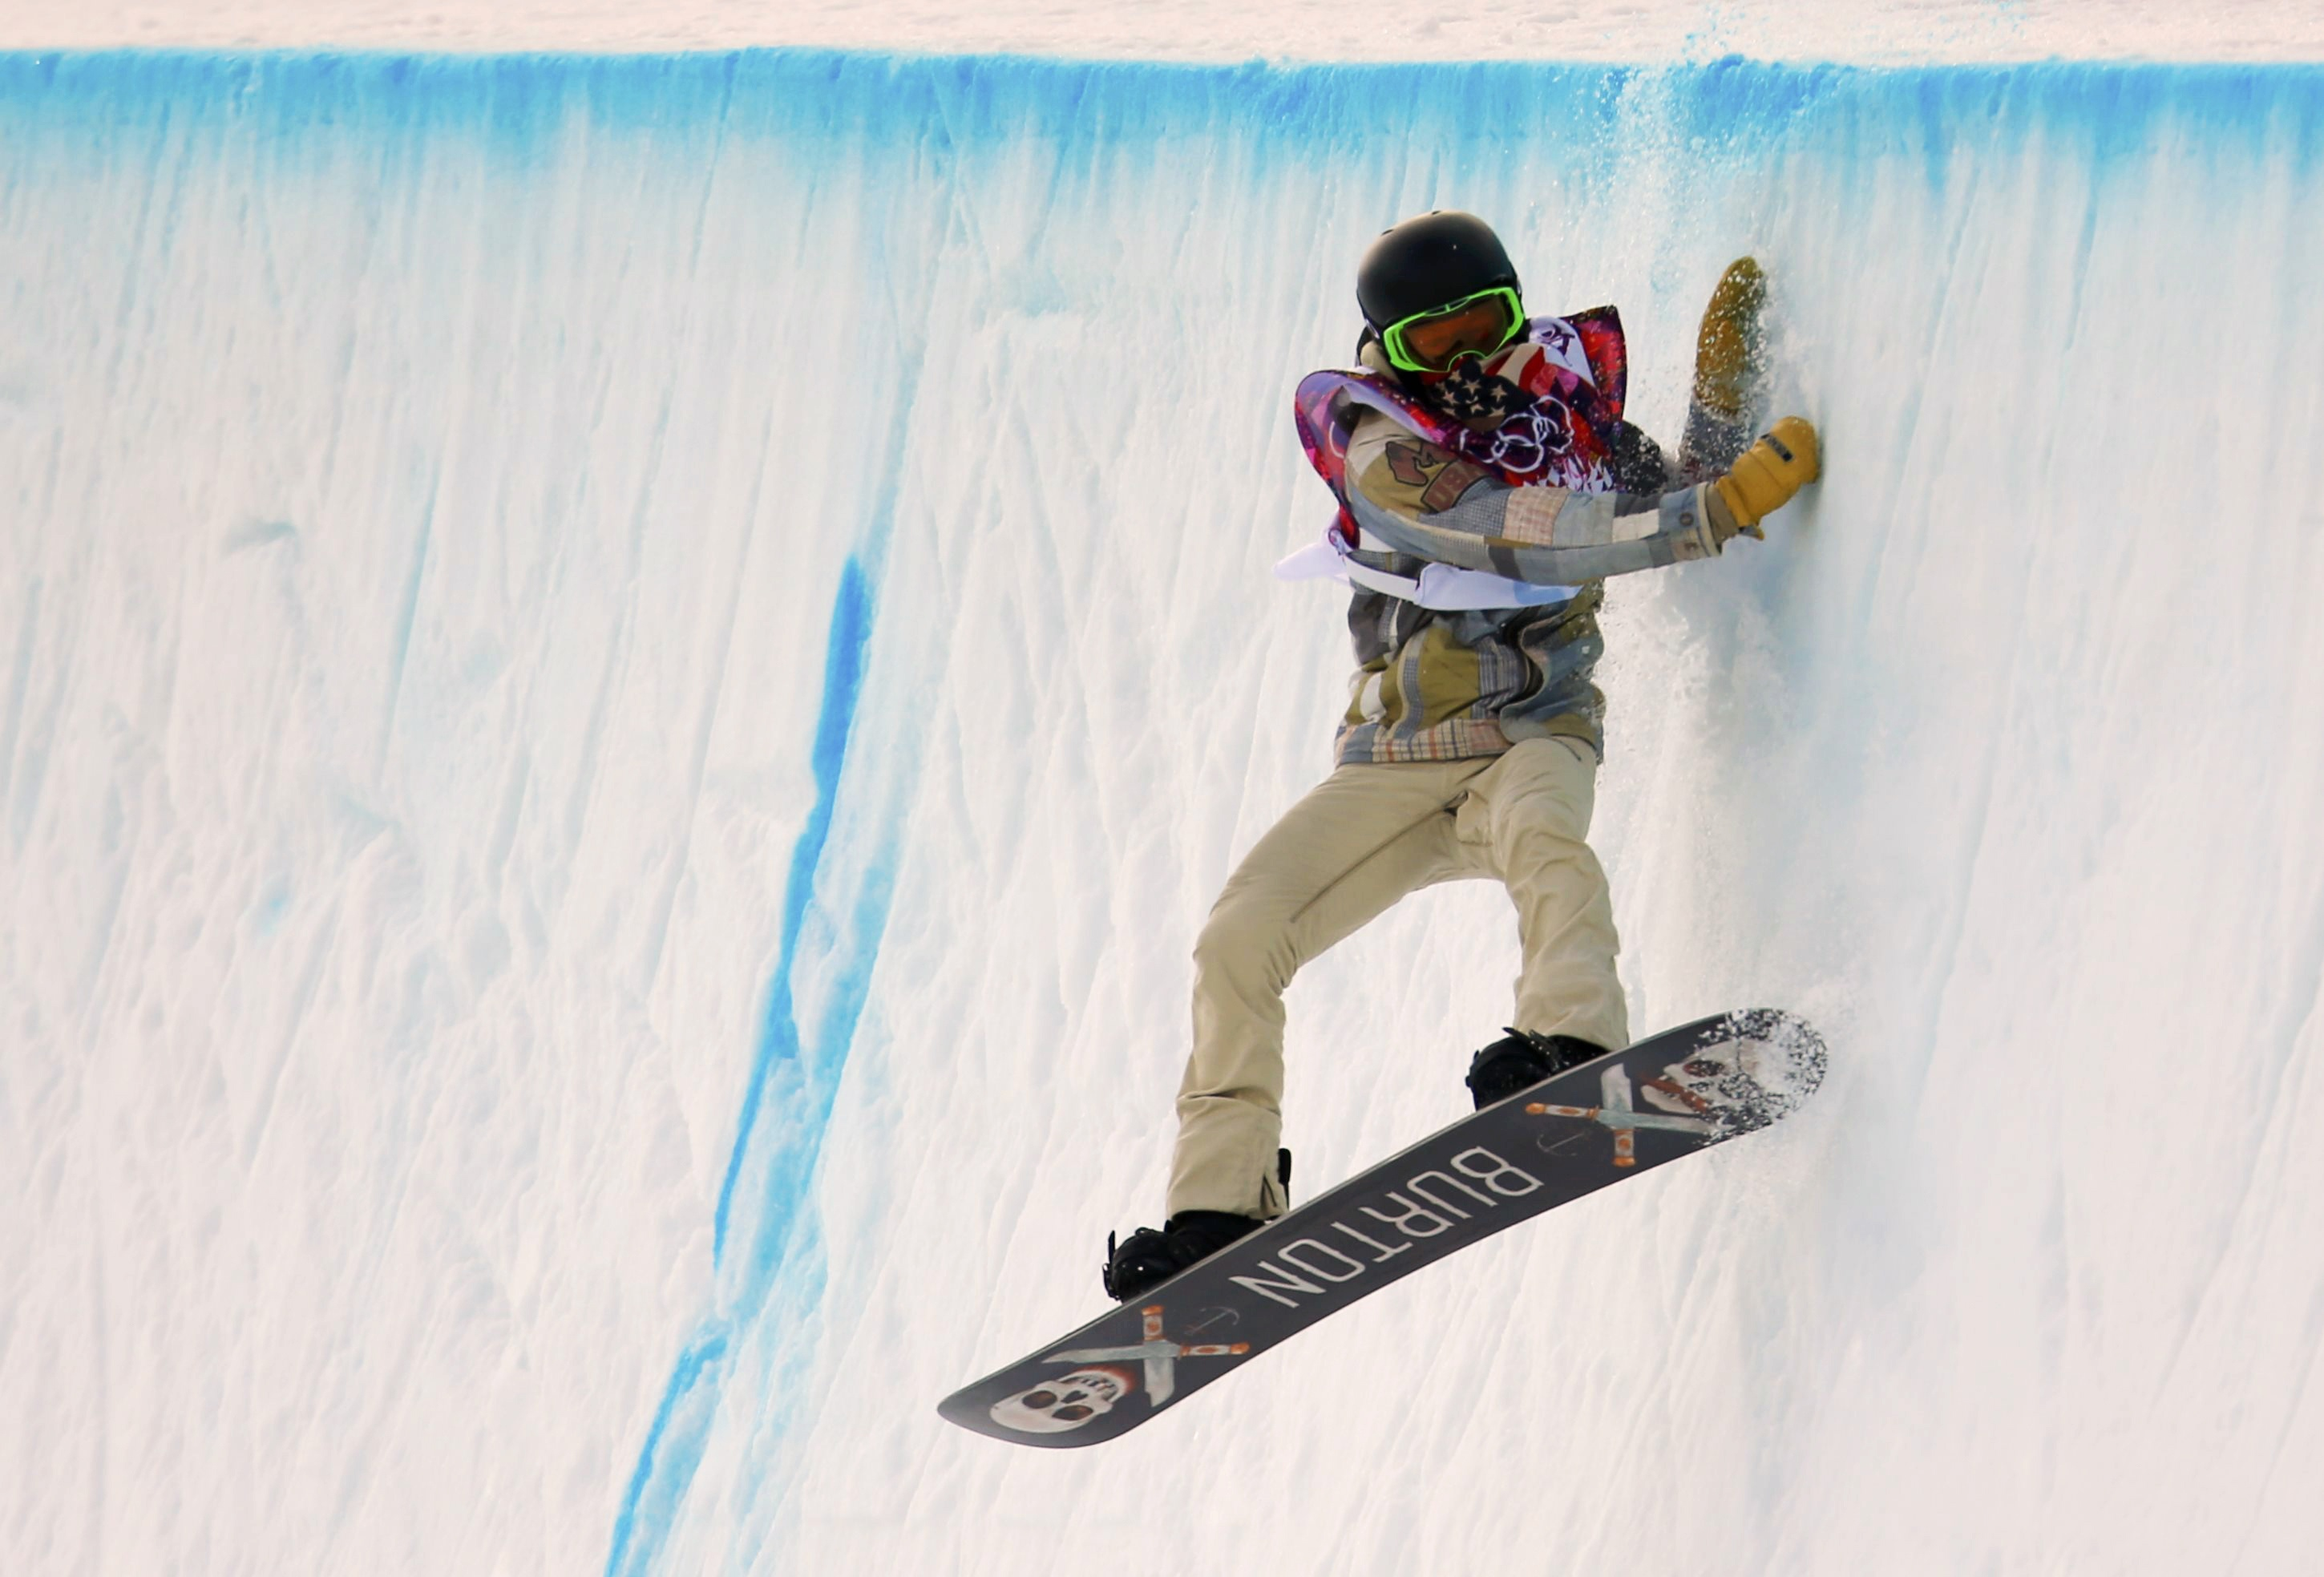 Sochi Olympics Day 6: Shaun White lands in 4th place in ...